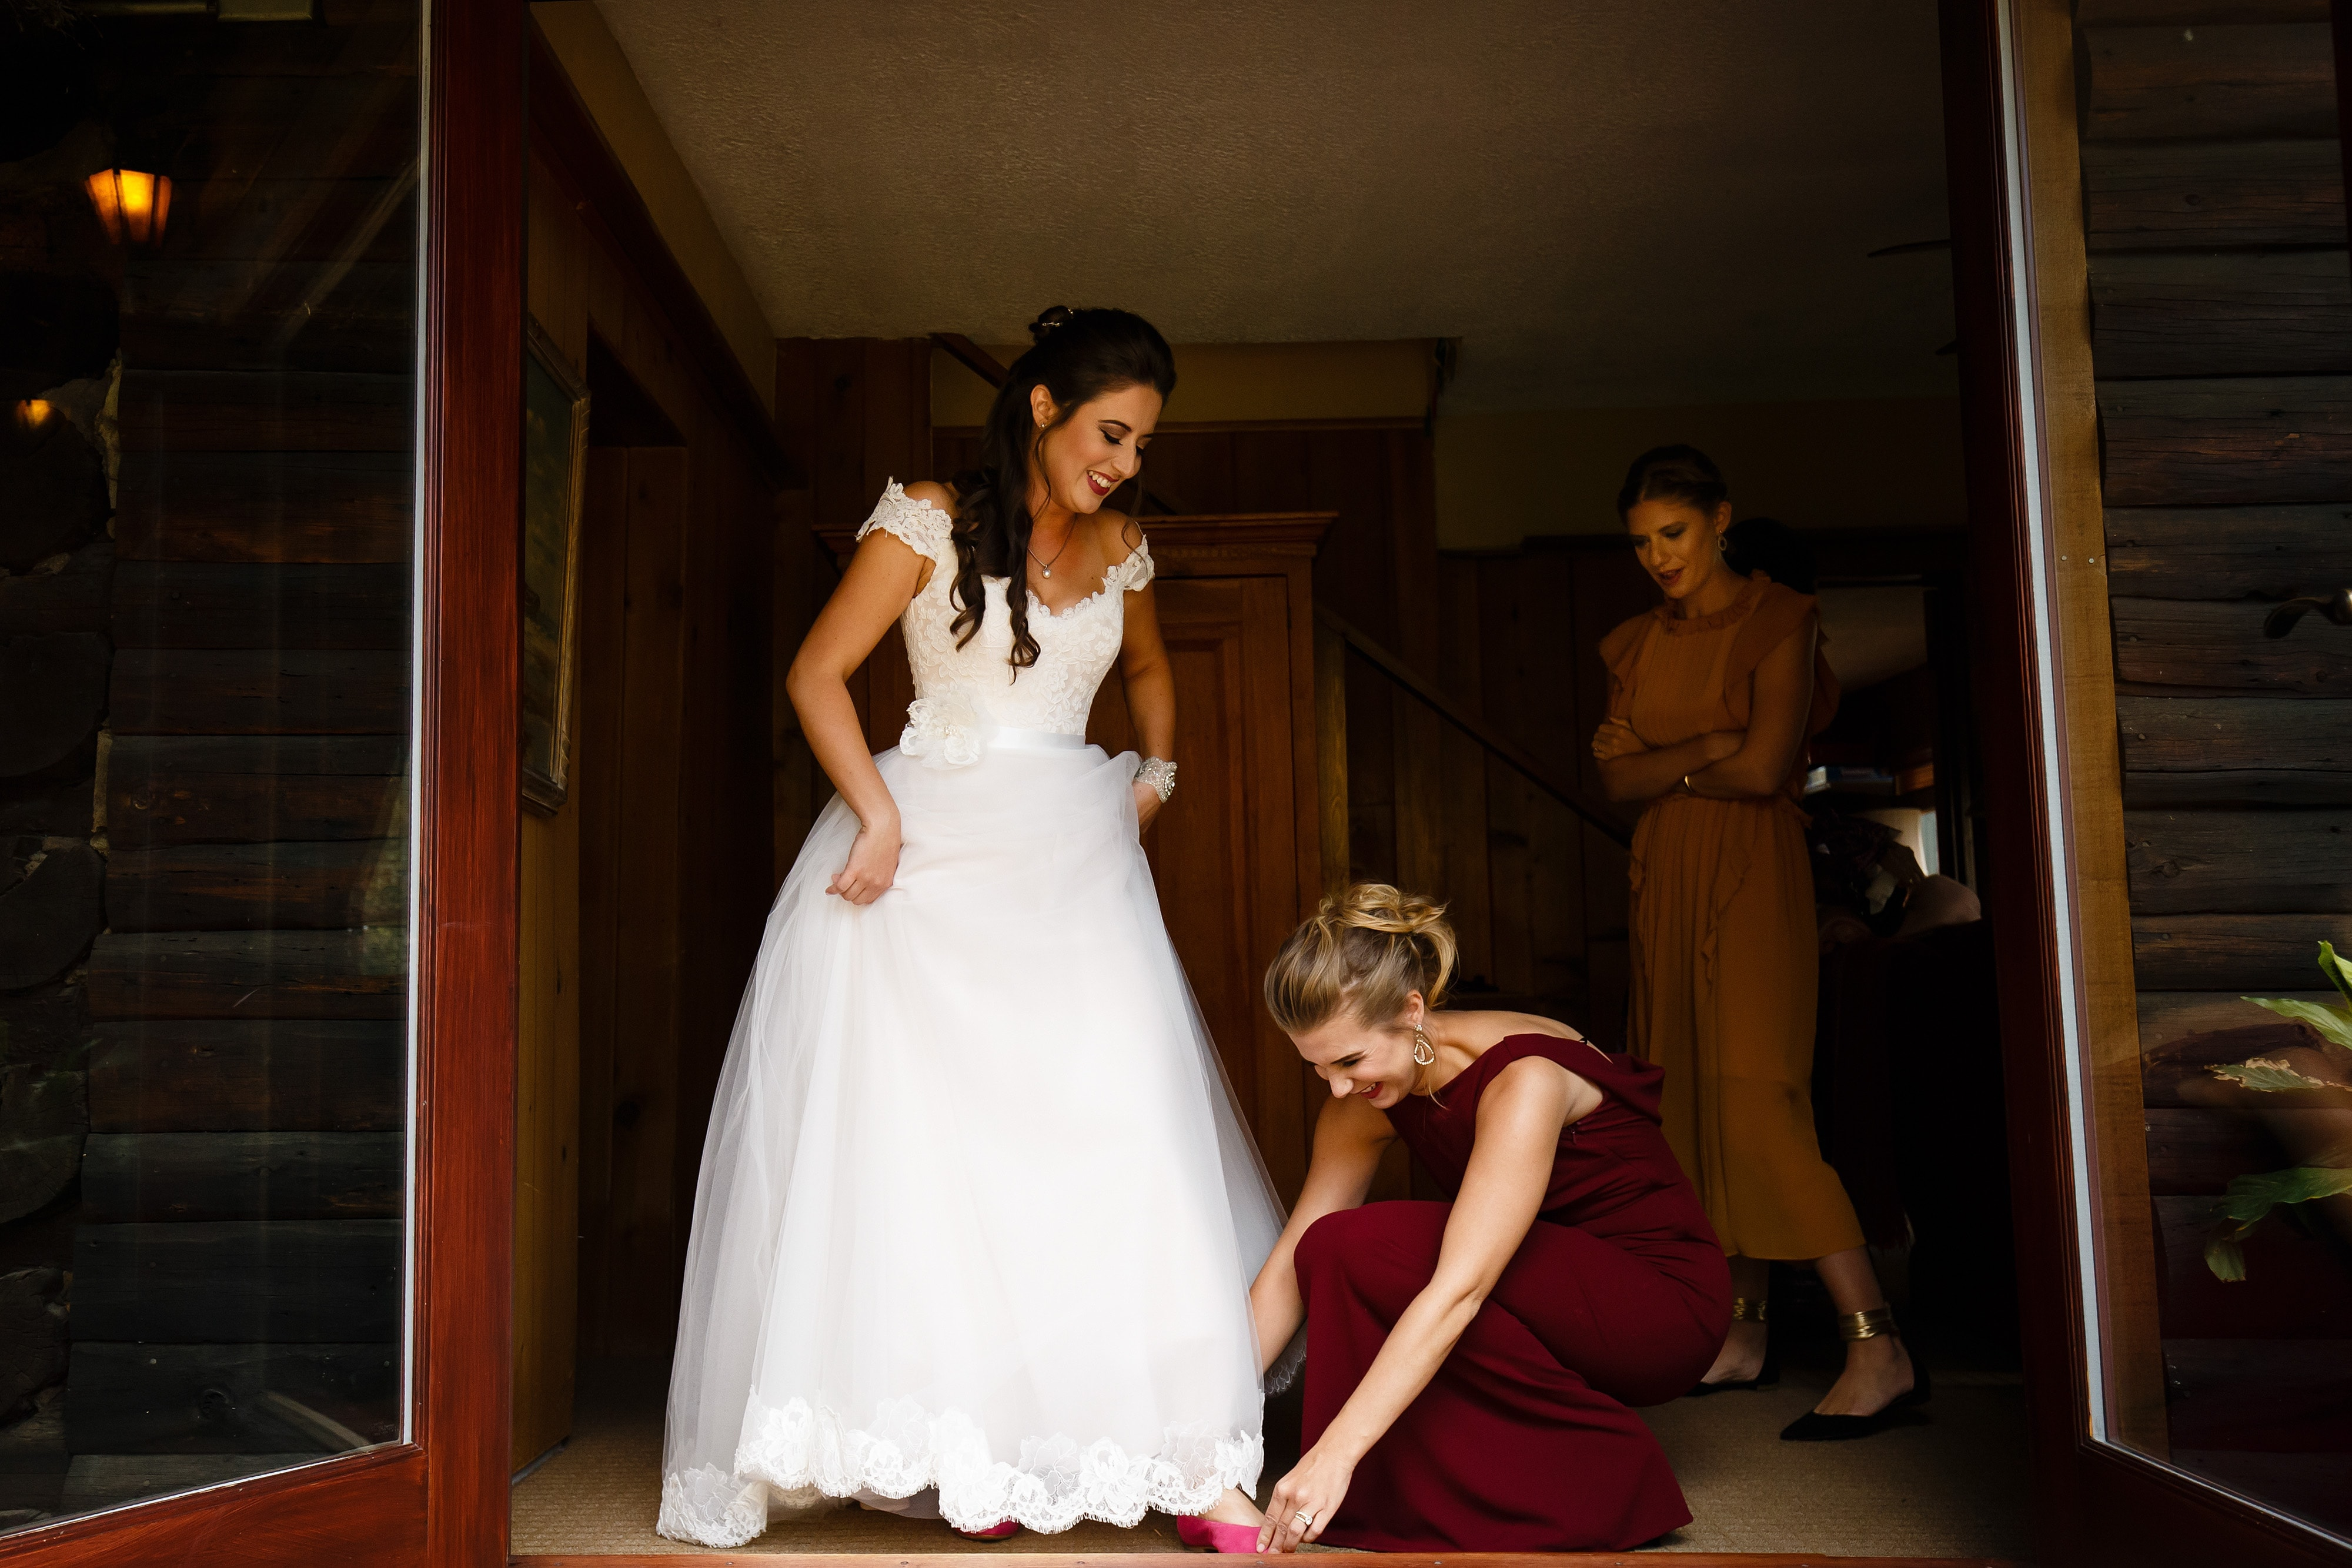 Mallory's sister helps her get into her shoes on her wedding day at Snowmass Cottages